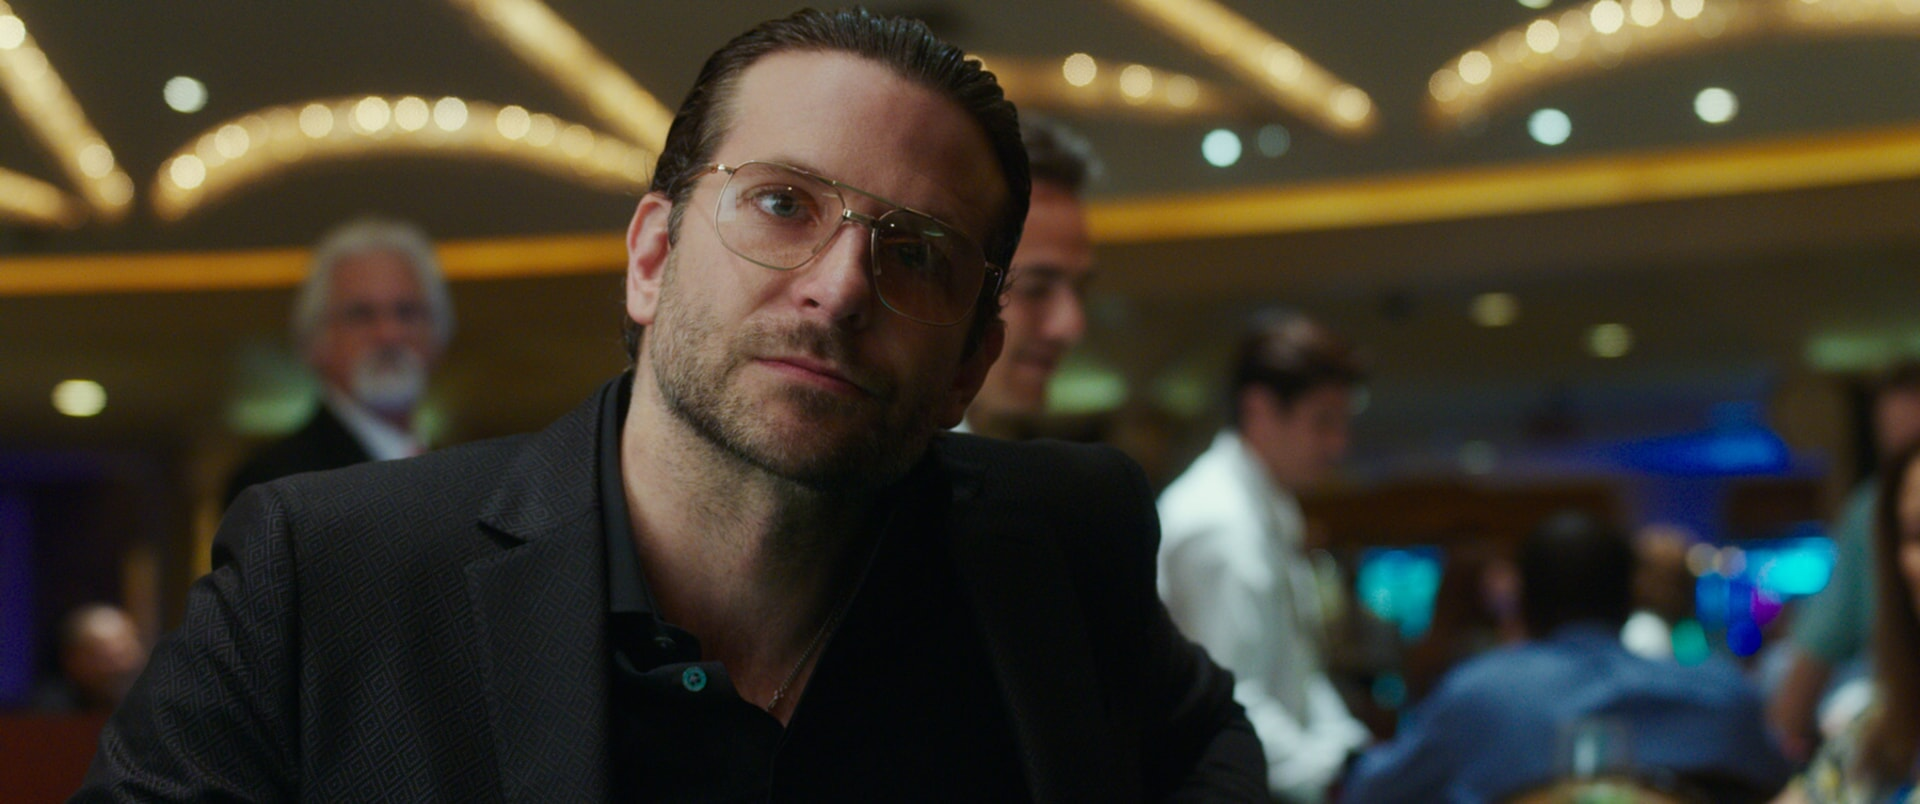 """BRADLEY COOPER as Henry in Warner Bros. Pictures' comedic drama (based on true events) """"WAR DOGS,"""" a Warner Bros. Pictures release."""